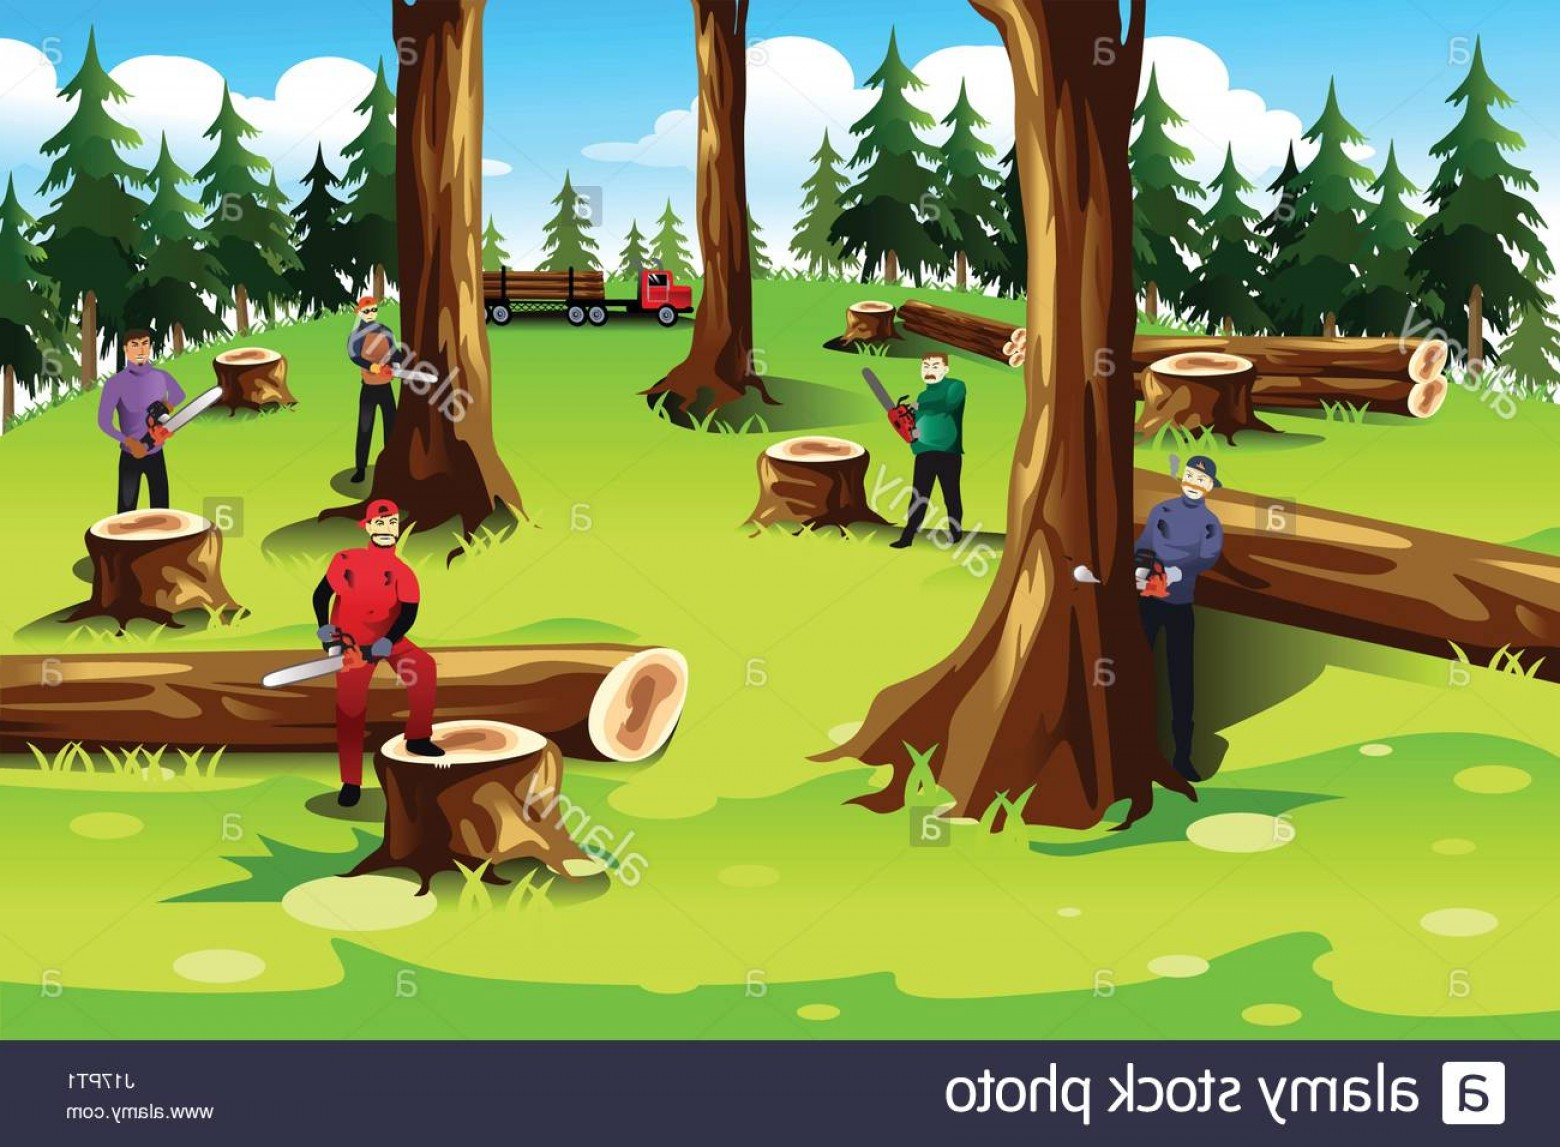 Wood Cutting Vector: Stock Photo A Vector Illustration Of People Cutting Down And Exploiting Trees